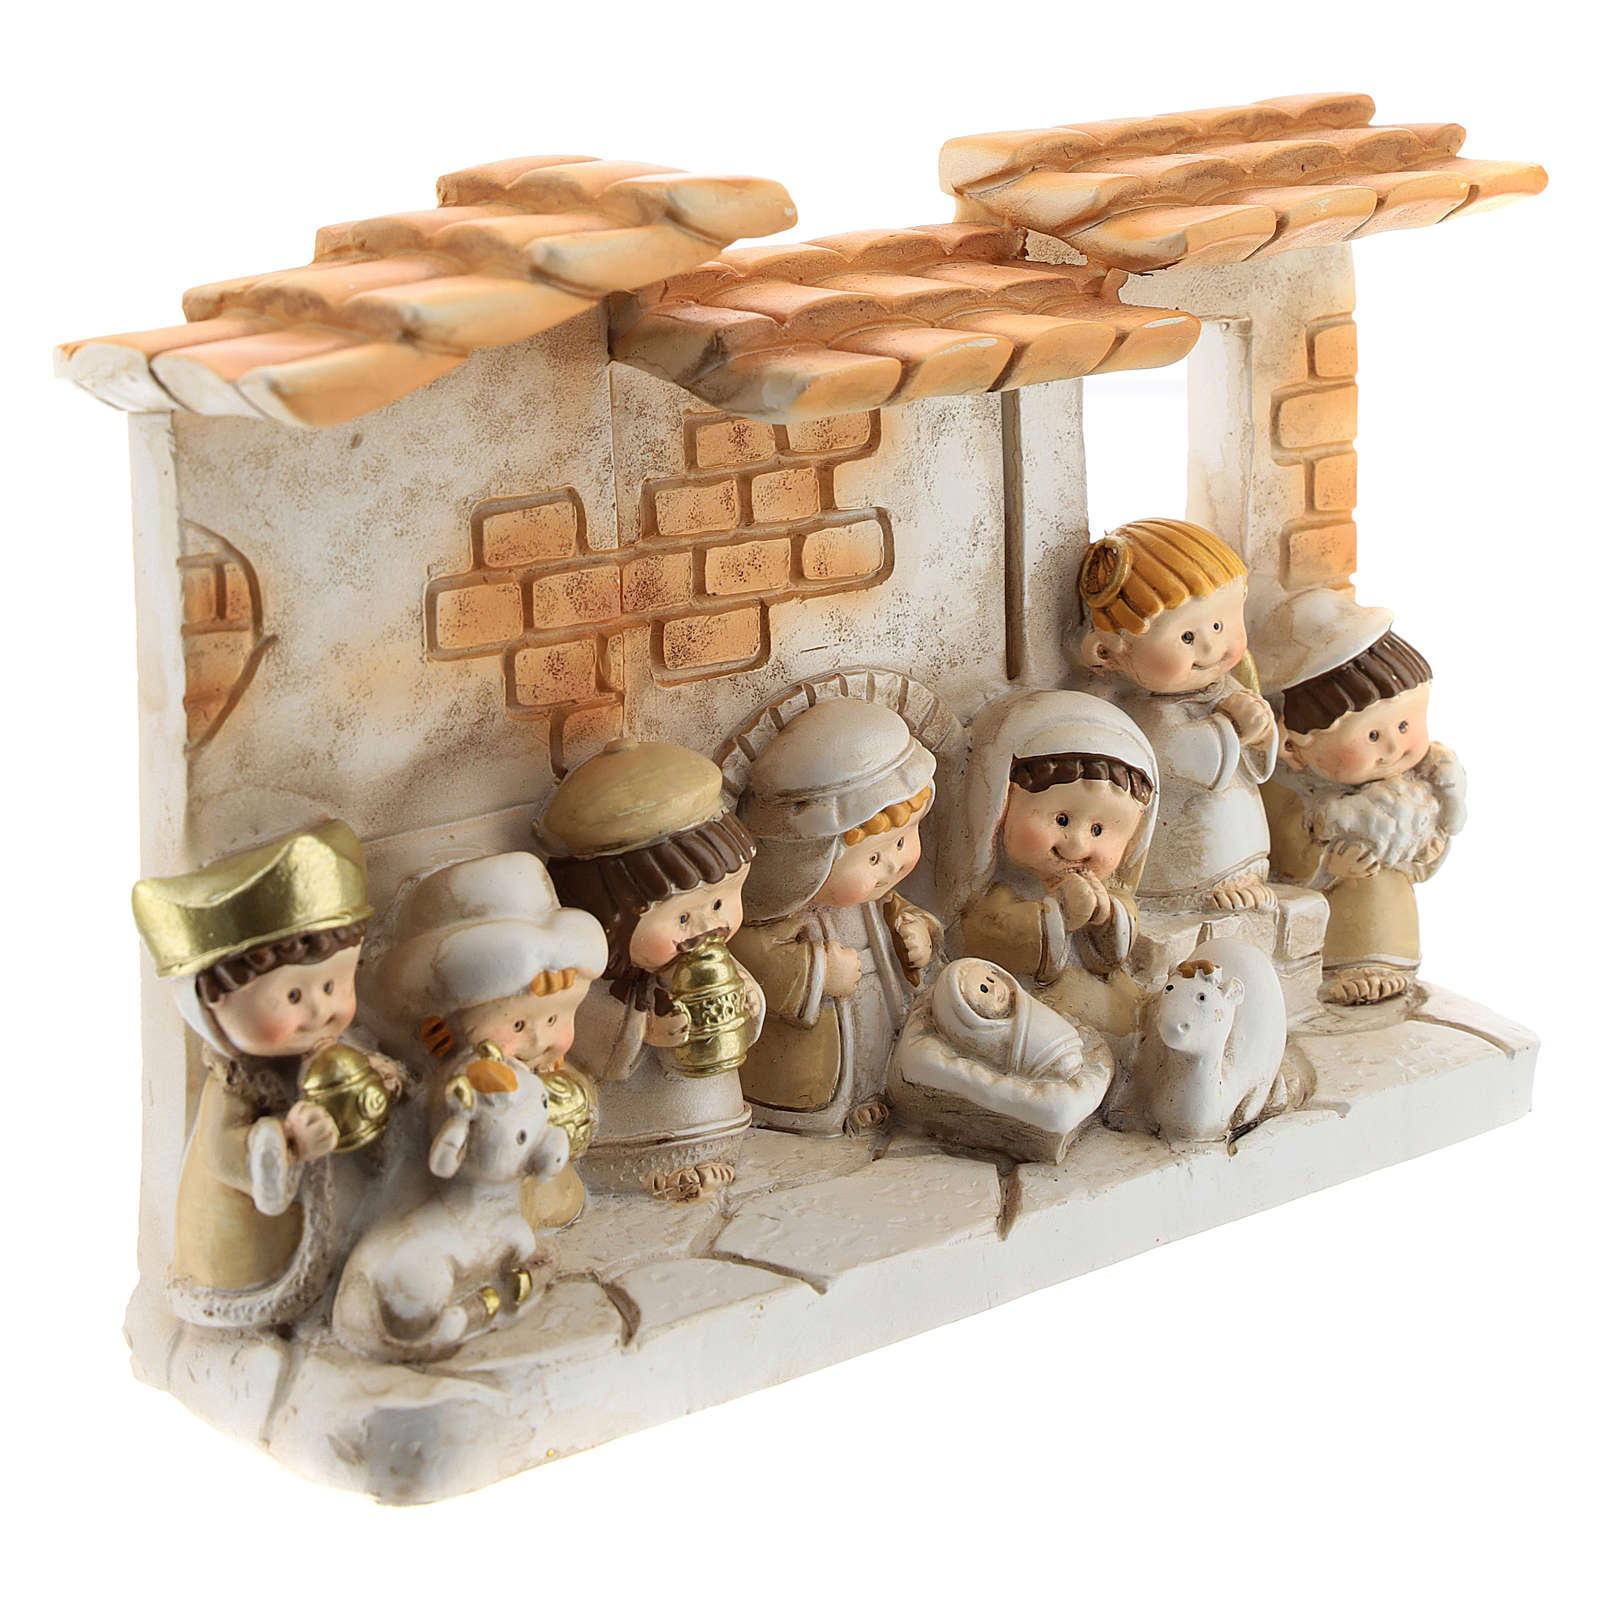 Nativity scene with hut made of resin with 10 characters 15x10 cm, children's line 4